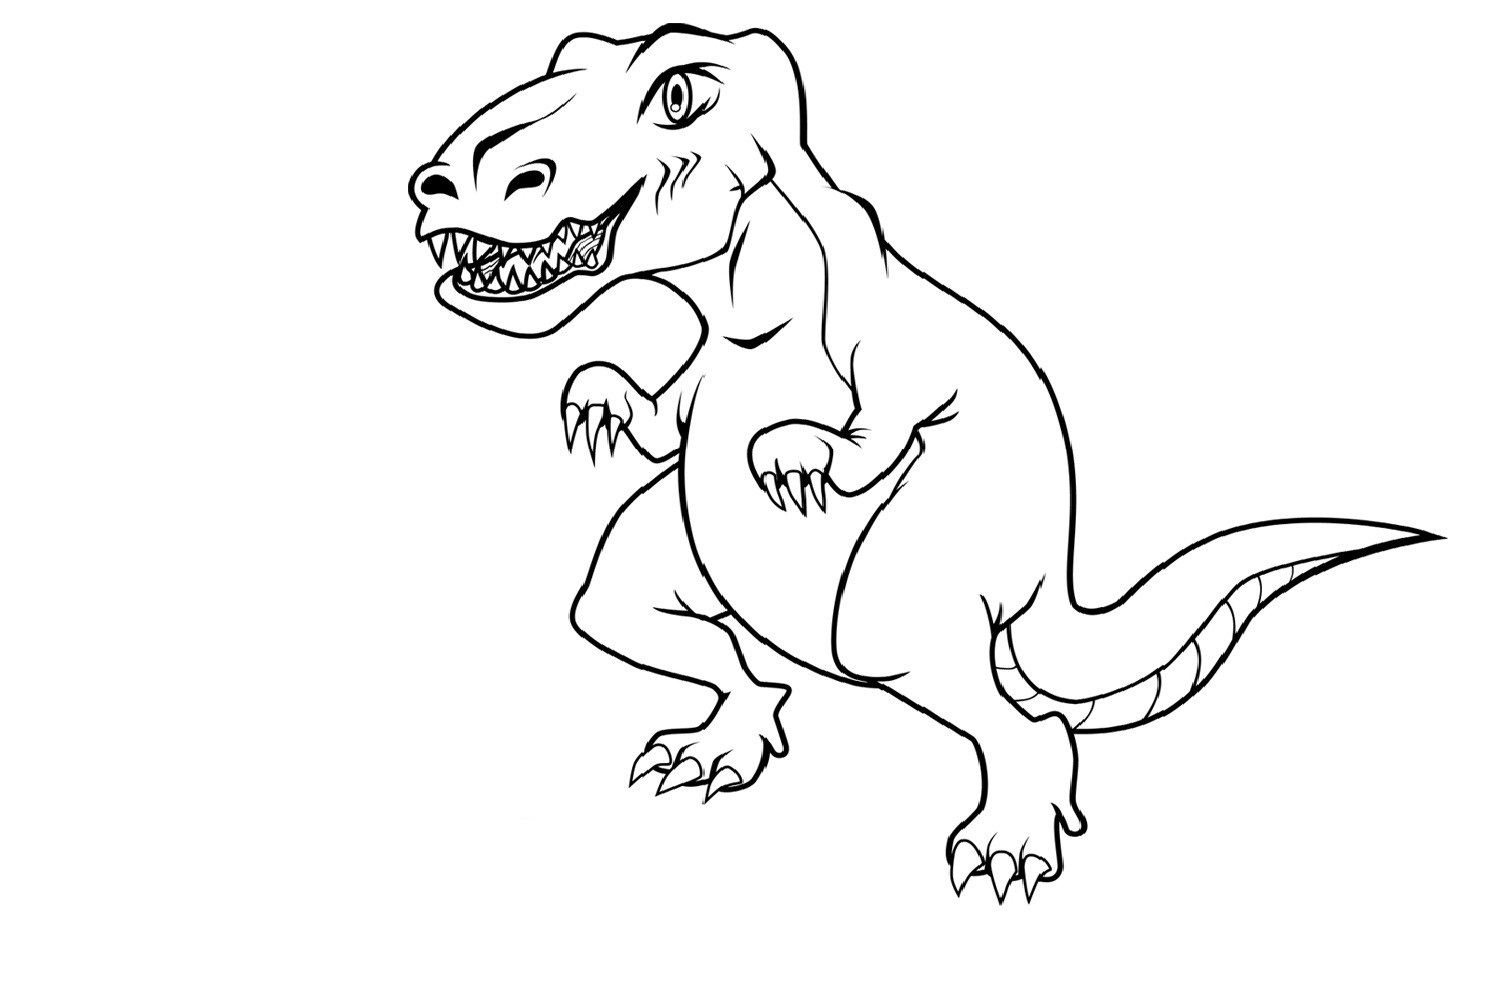 Free Printable Dinosaur Coloring Pages For Kids Free Printable Color Pages